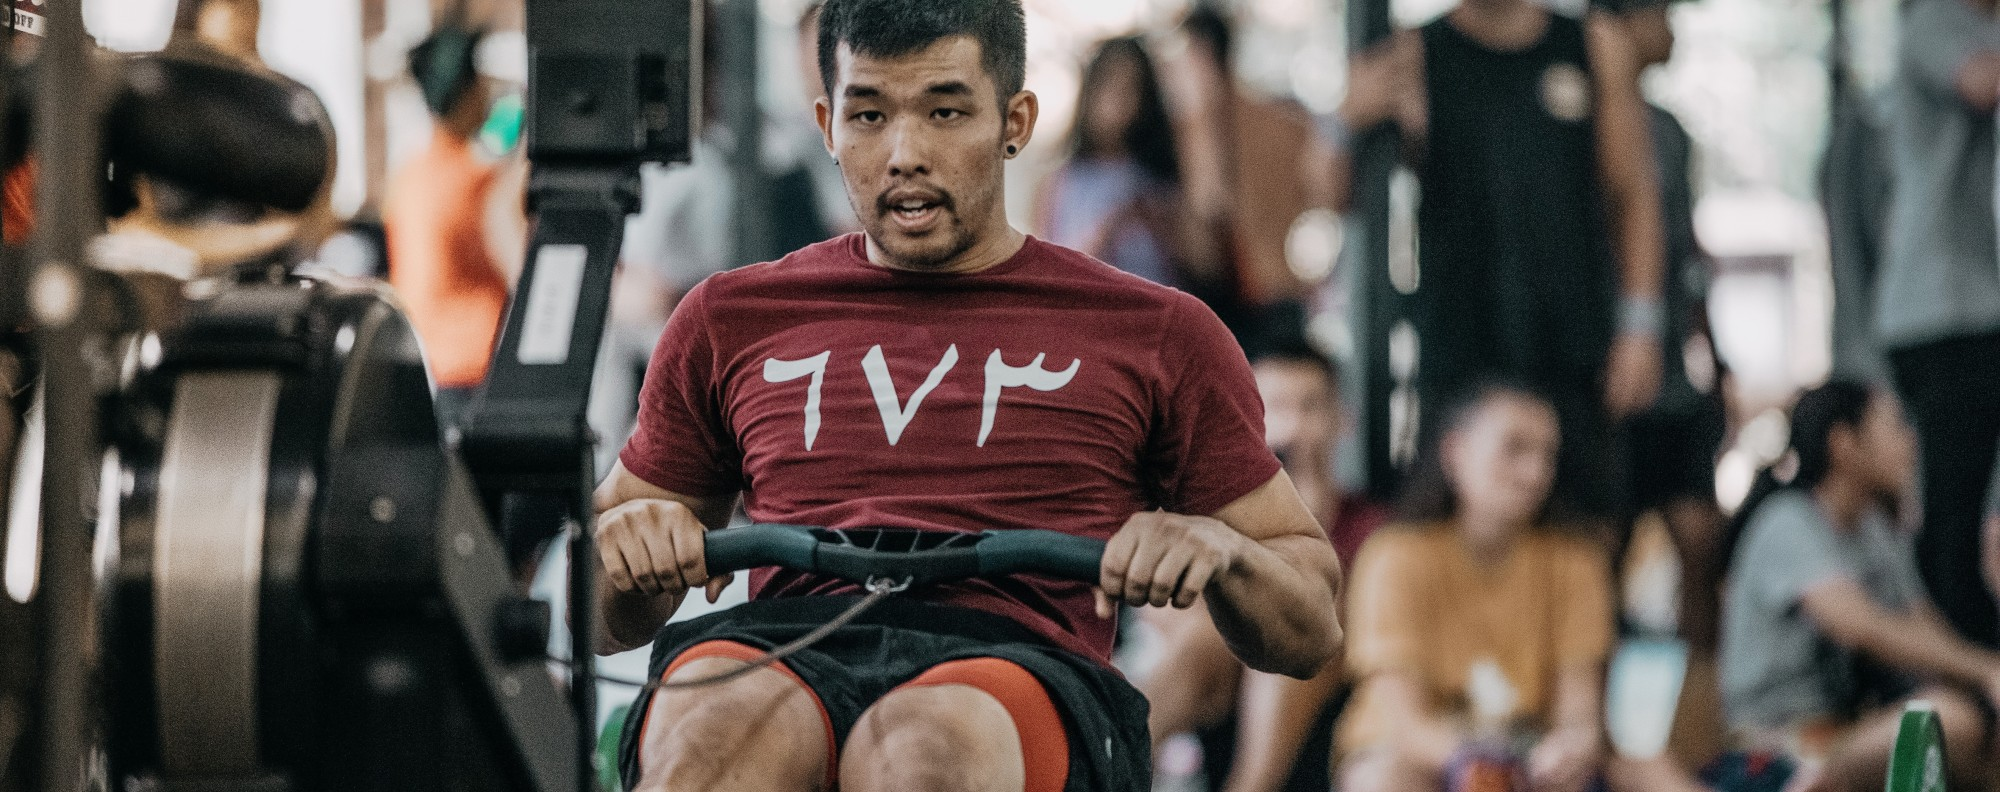 Jonathan Ooi said balancing a full-time job, coaching CrossFit and also competing, requires a number of skills. Photo: Stace Lee